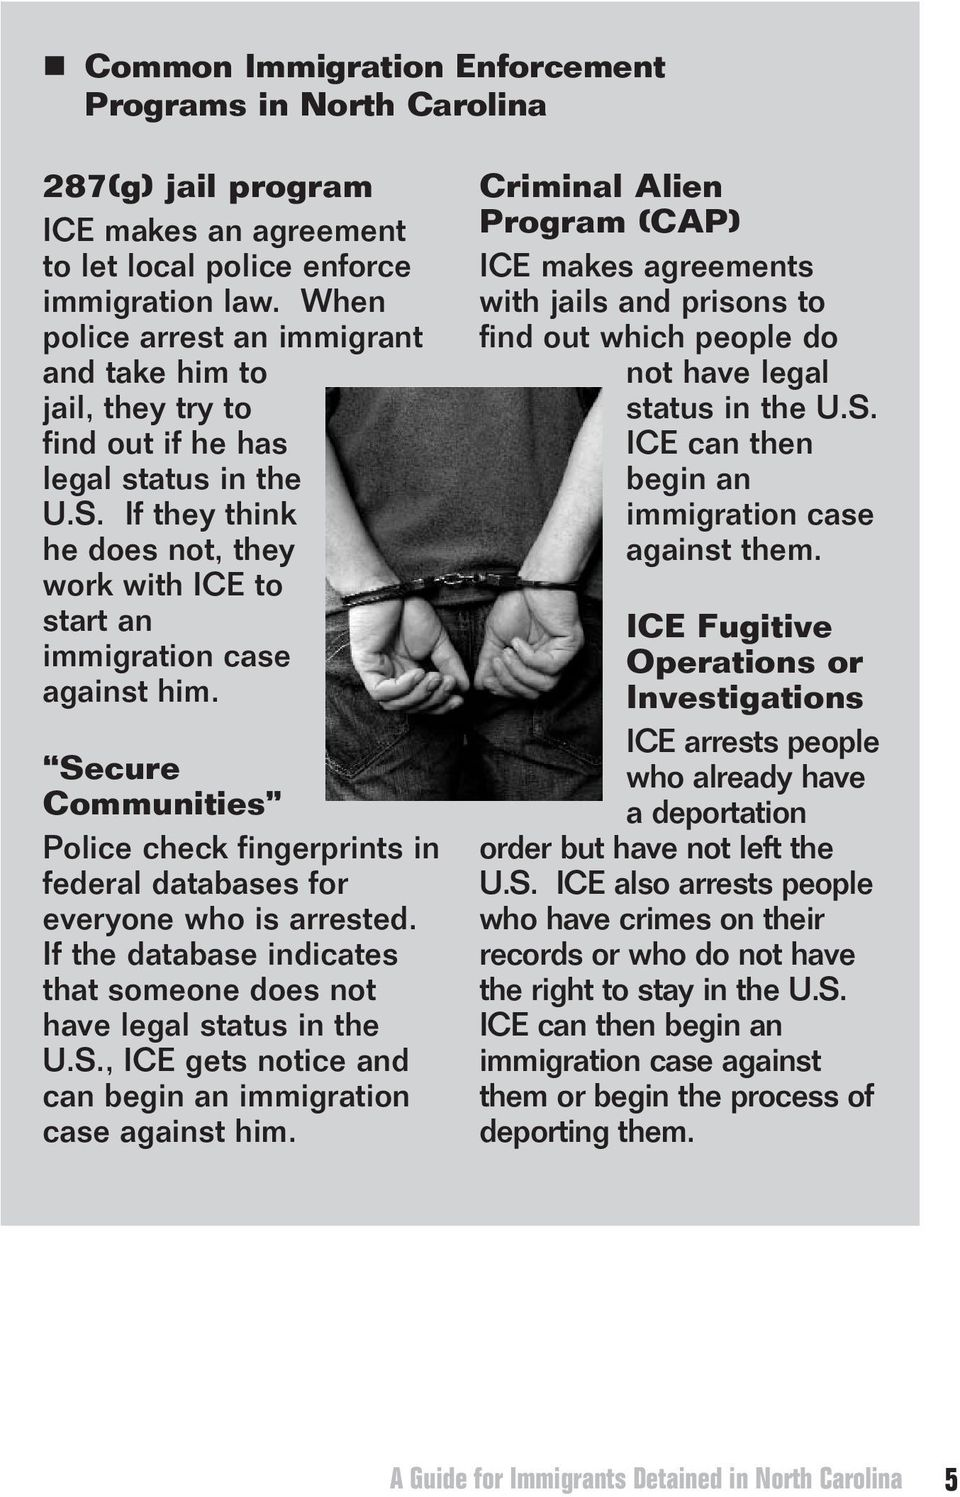 Picked Up A Guide for Immigrants Detained in North Carolina - PDF